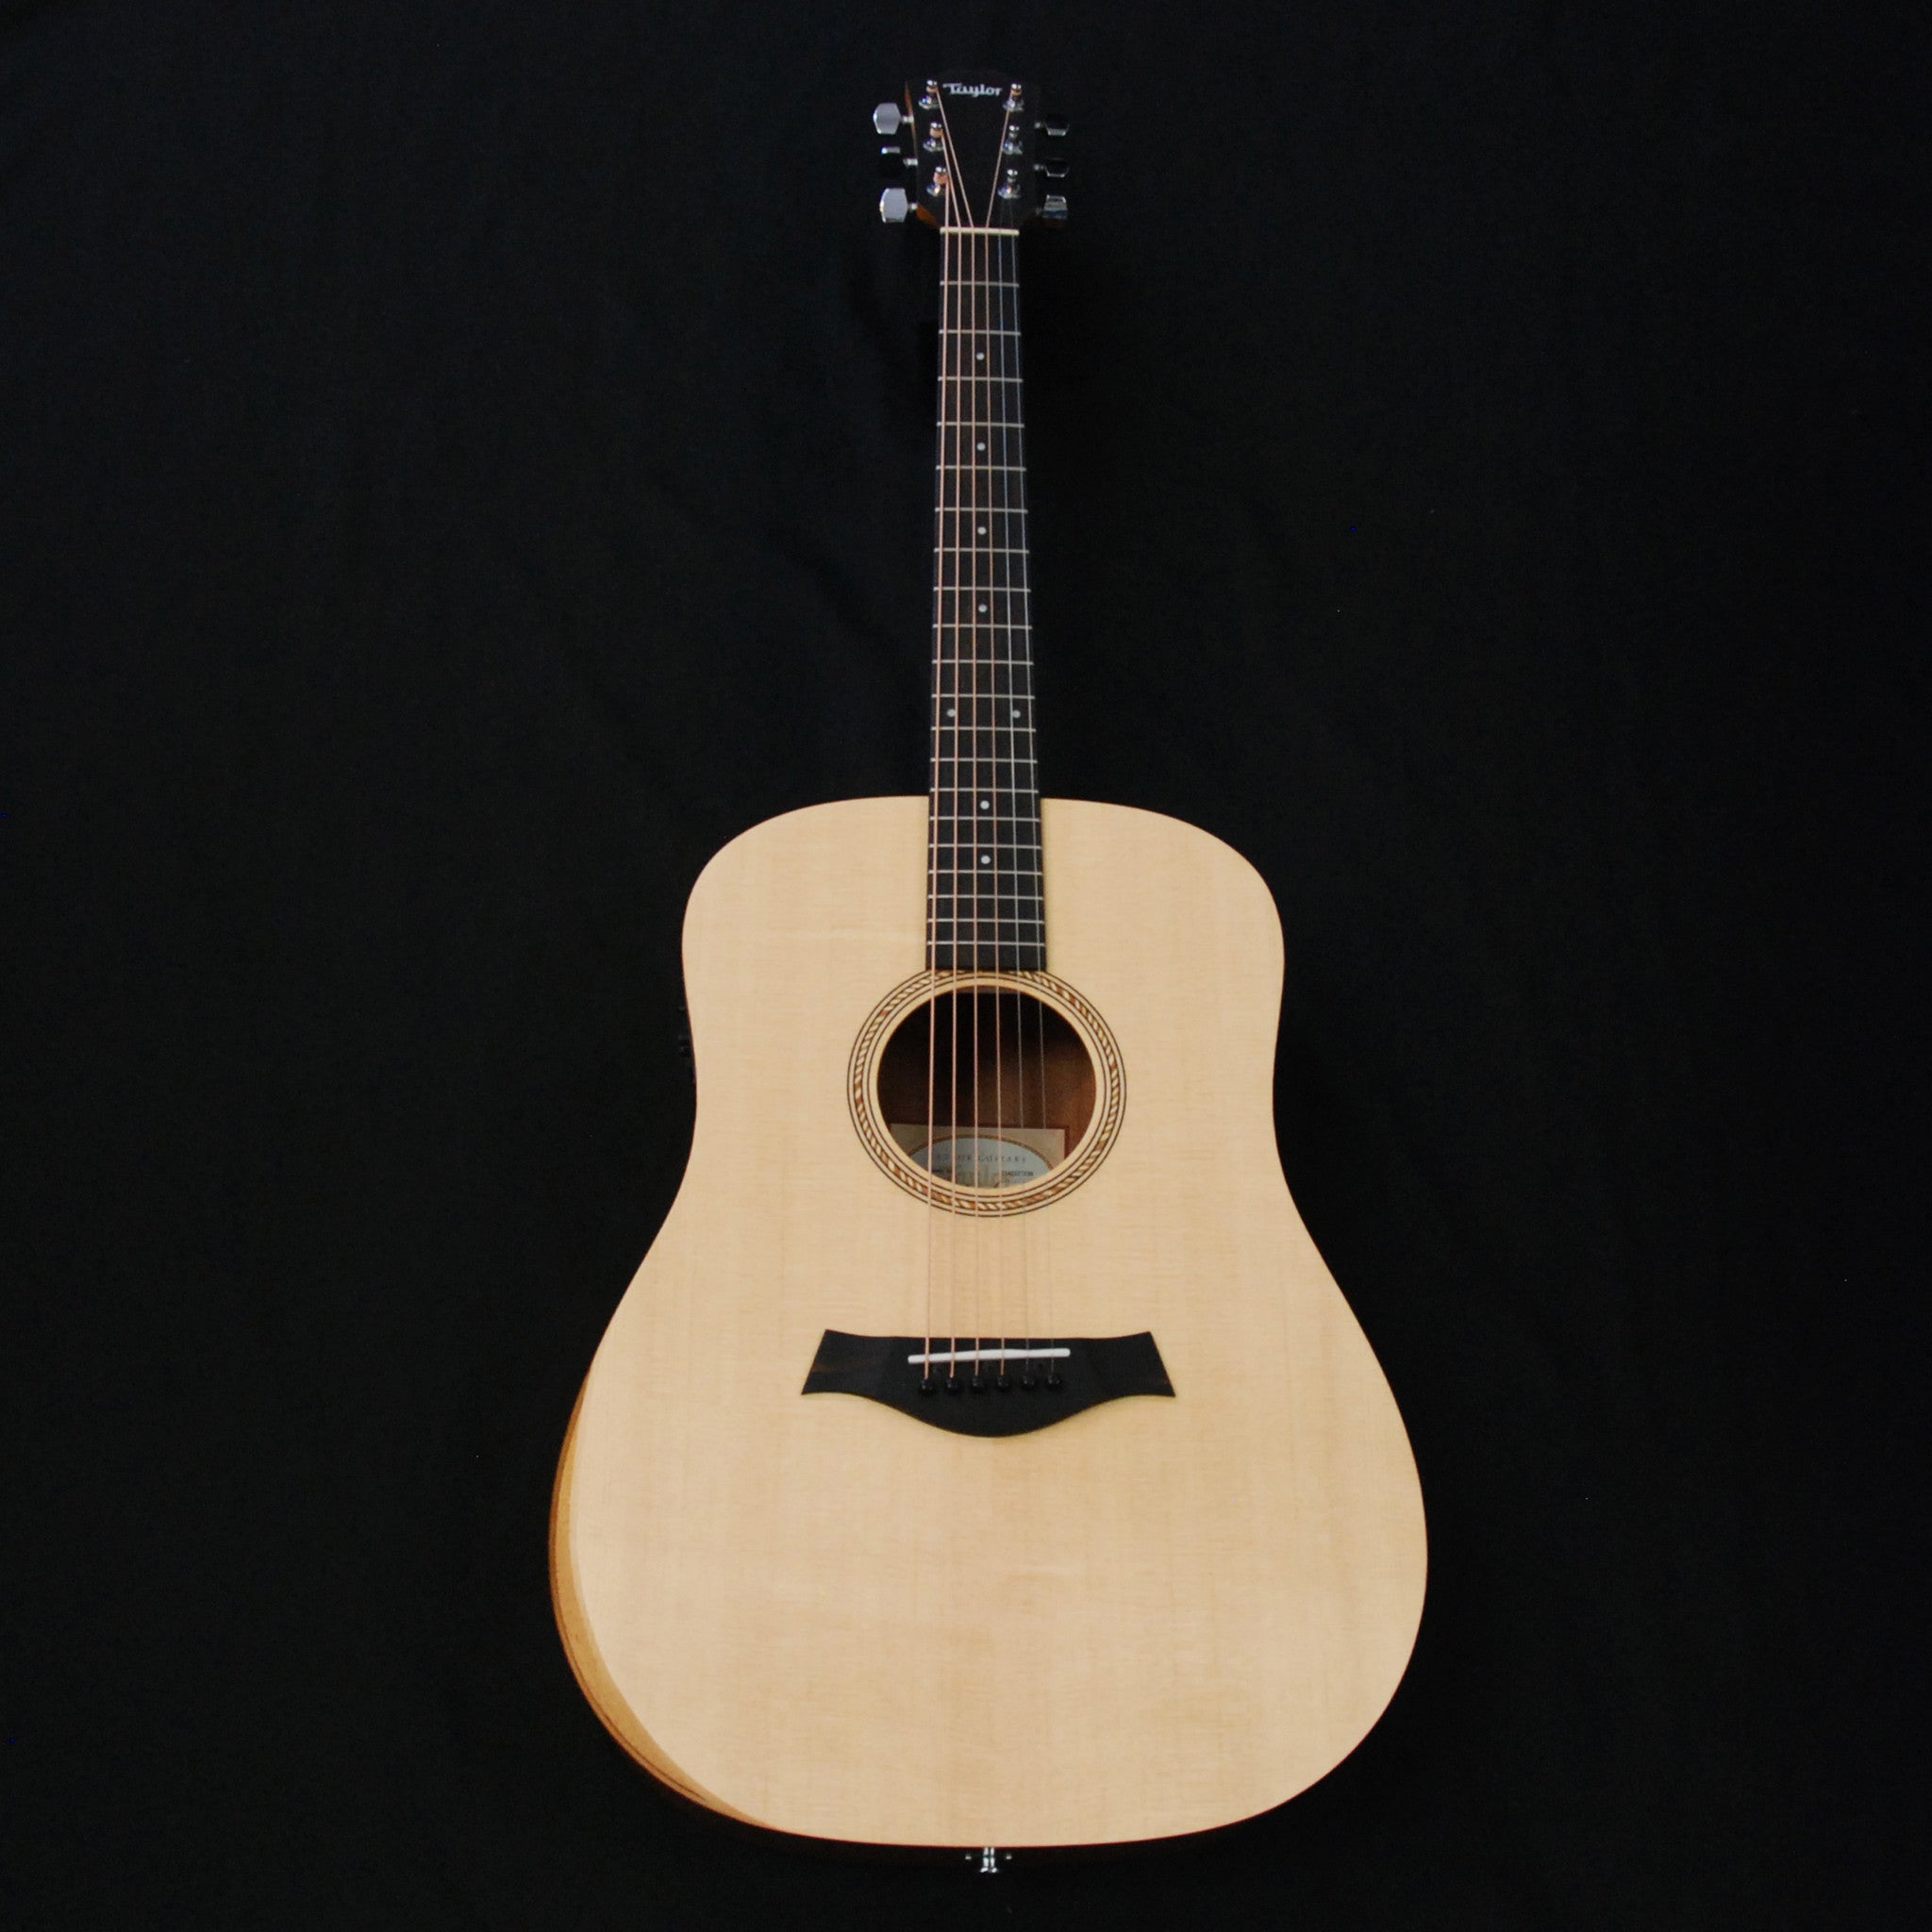 Shop online for Taylor Academy A10e Dreadnought Acoustic/Electric Guitar Natural [F000032016000011000] today.  Now available for purchase from Midlothian Music of Orland Park, Illinois, USA